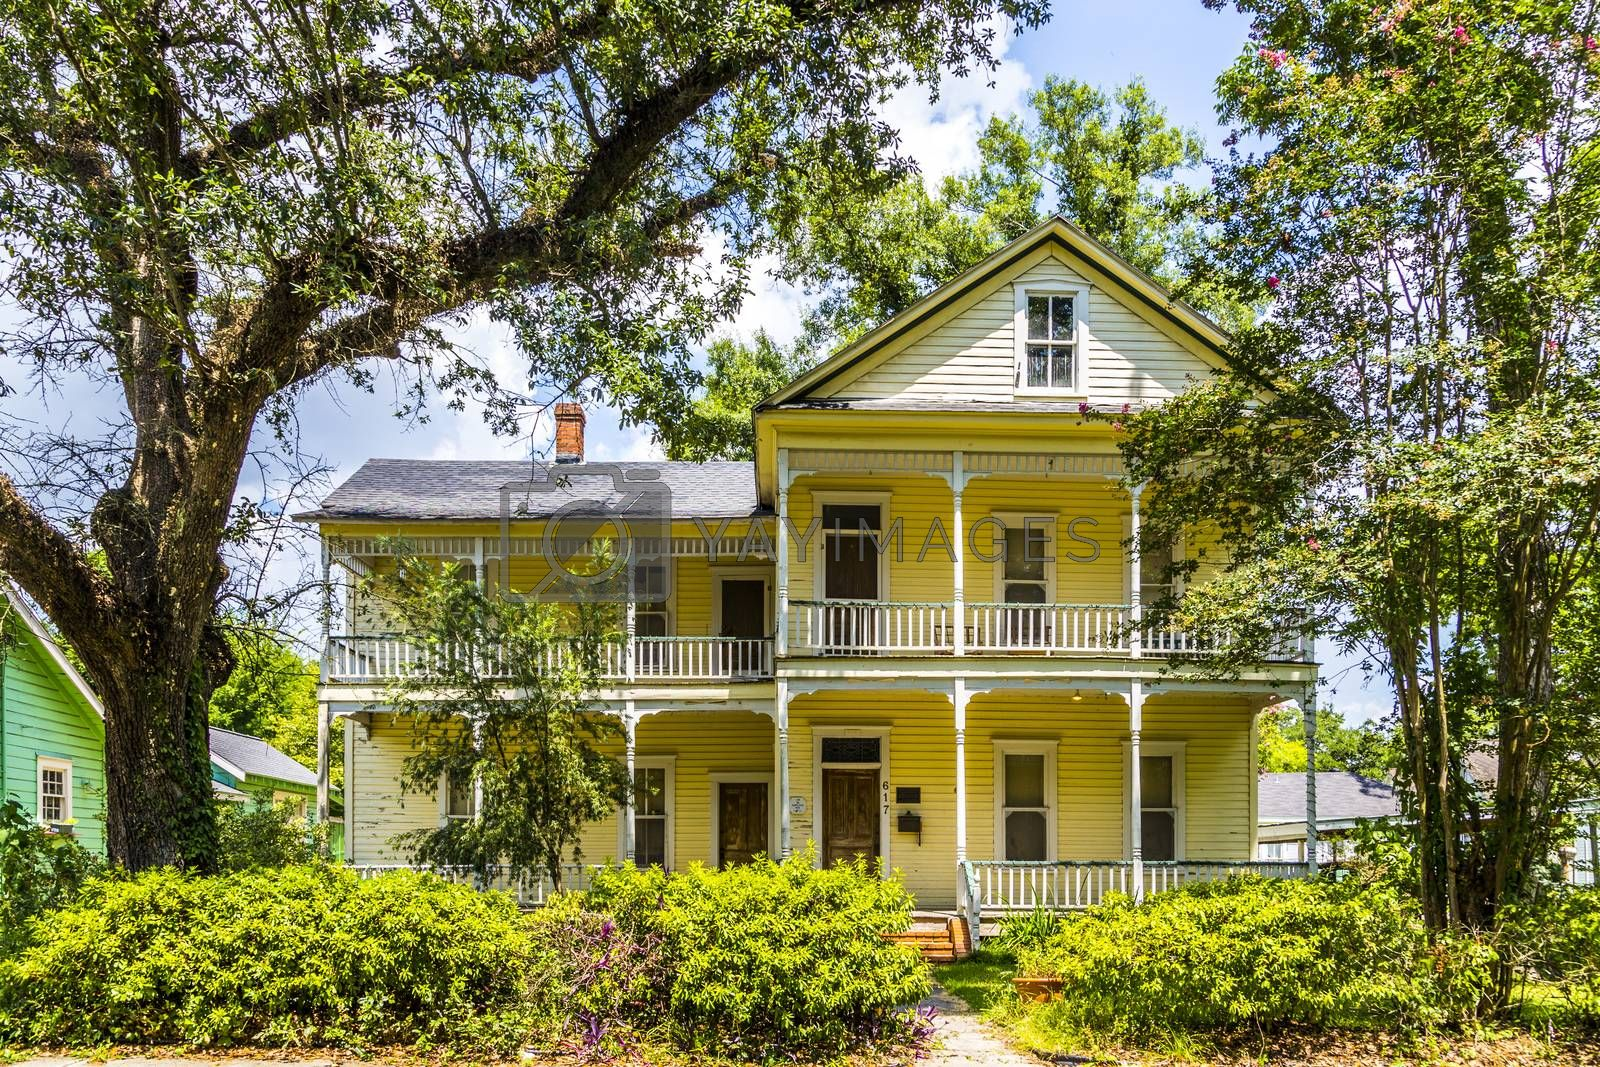 LAKE CHARLES, USA - JULY 12, 2013: visit the old farm houses at the Carpentier district in Lake Charles, USA. At the District one can view dozens of homes constructed between 1885 and 1920.